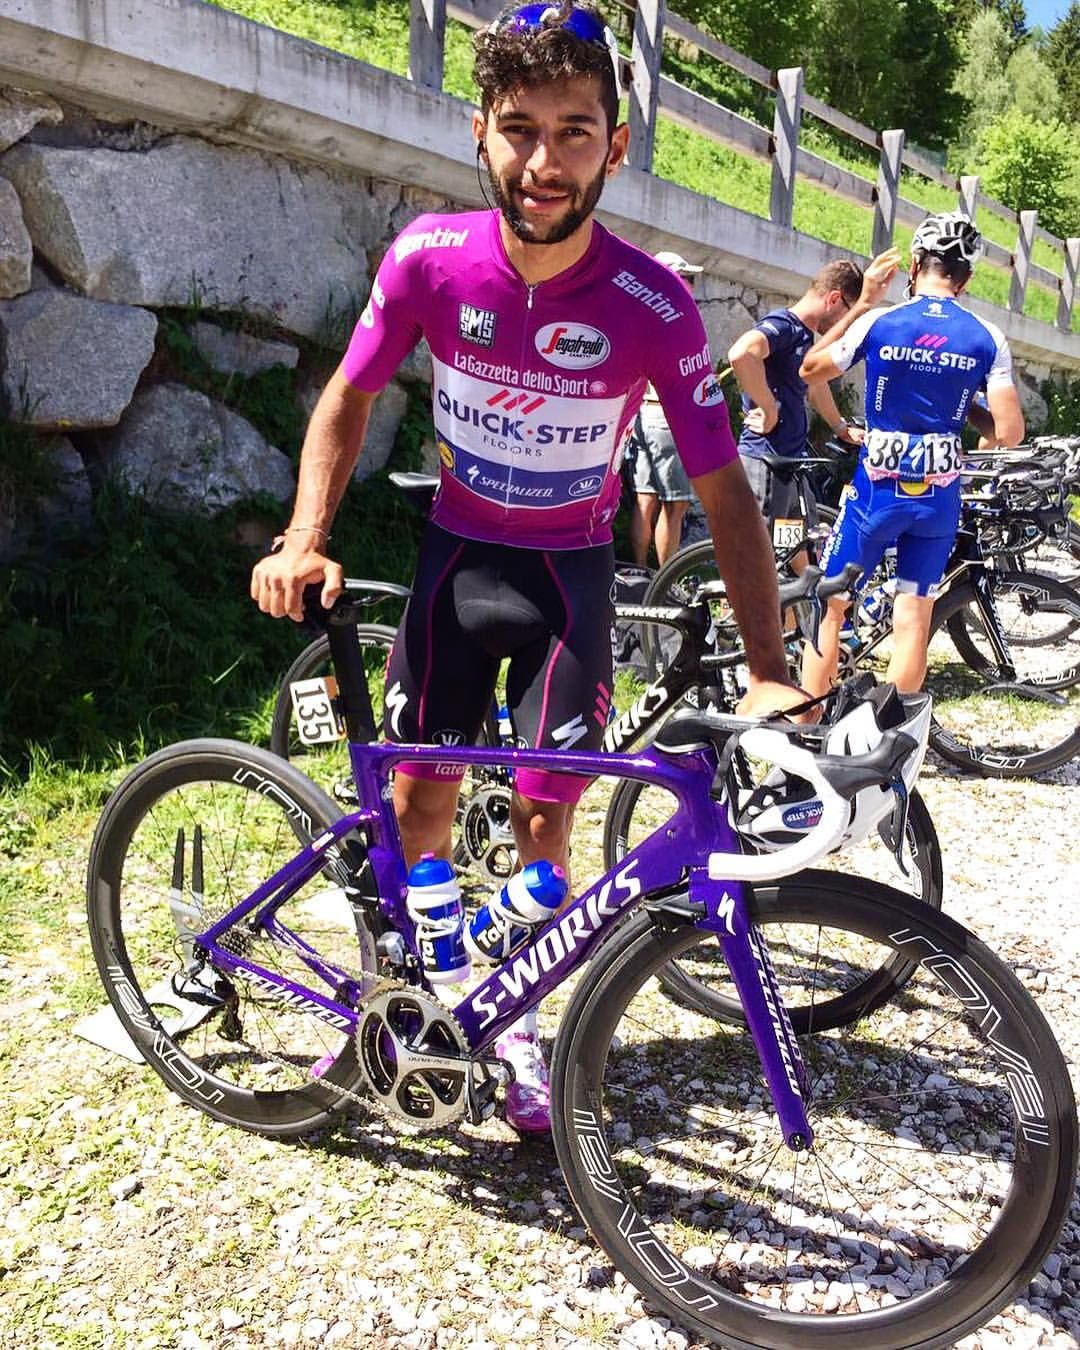 6 150 Likes 28 Comments Quick Step Floors Cycling Team